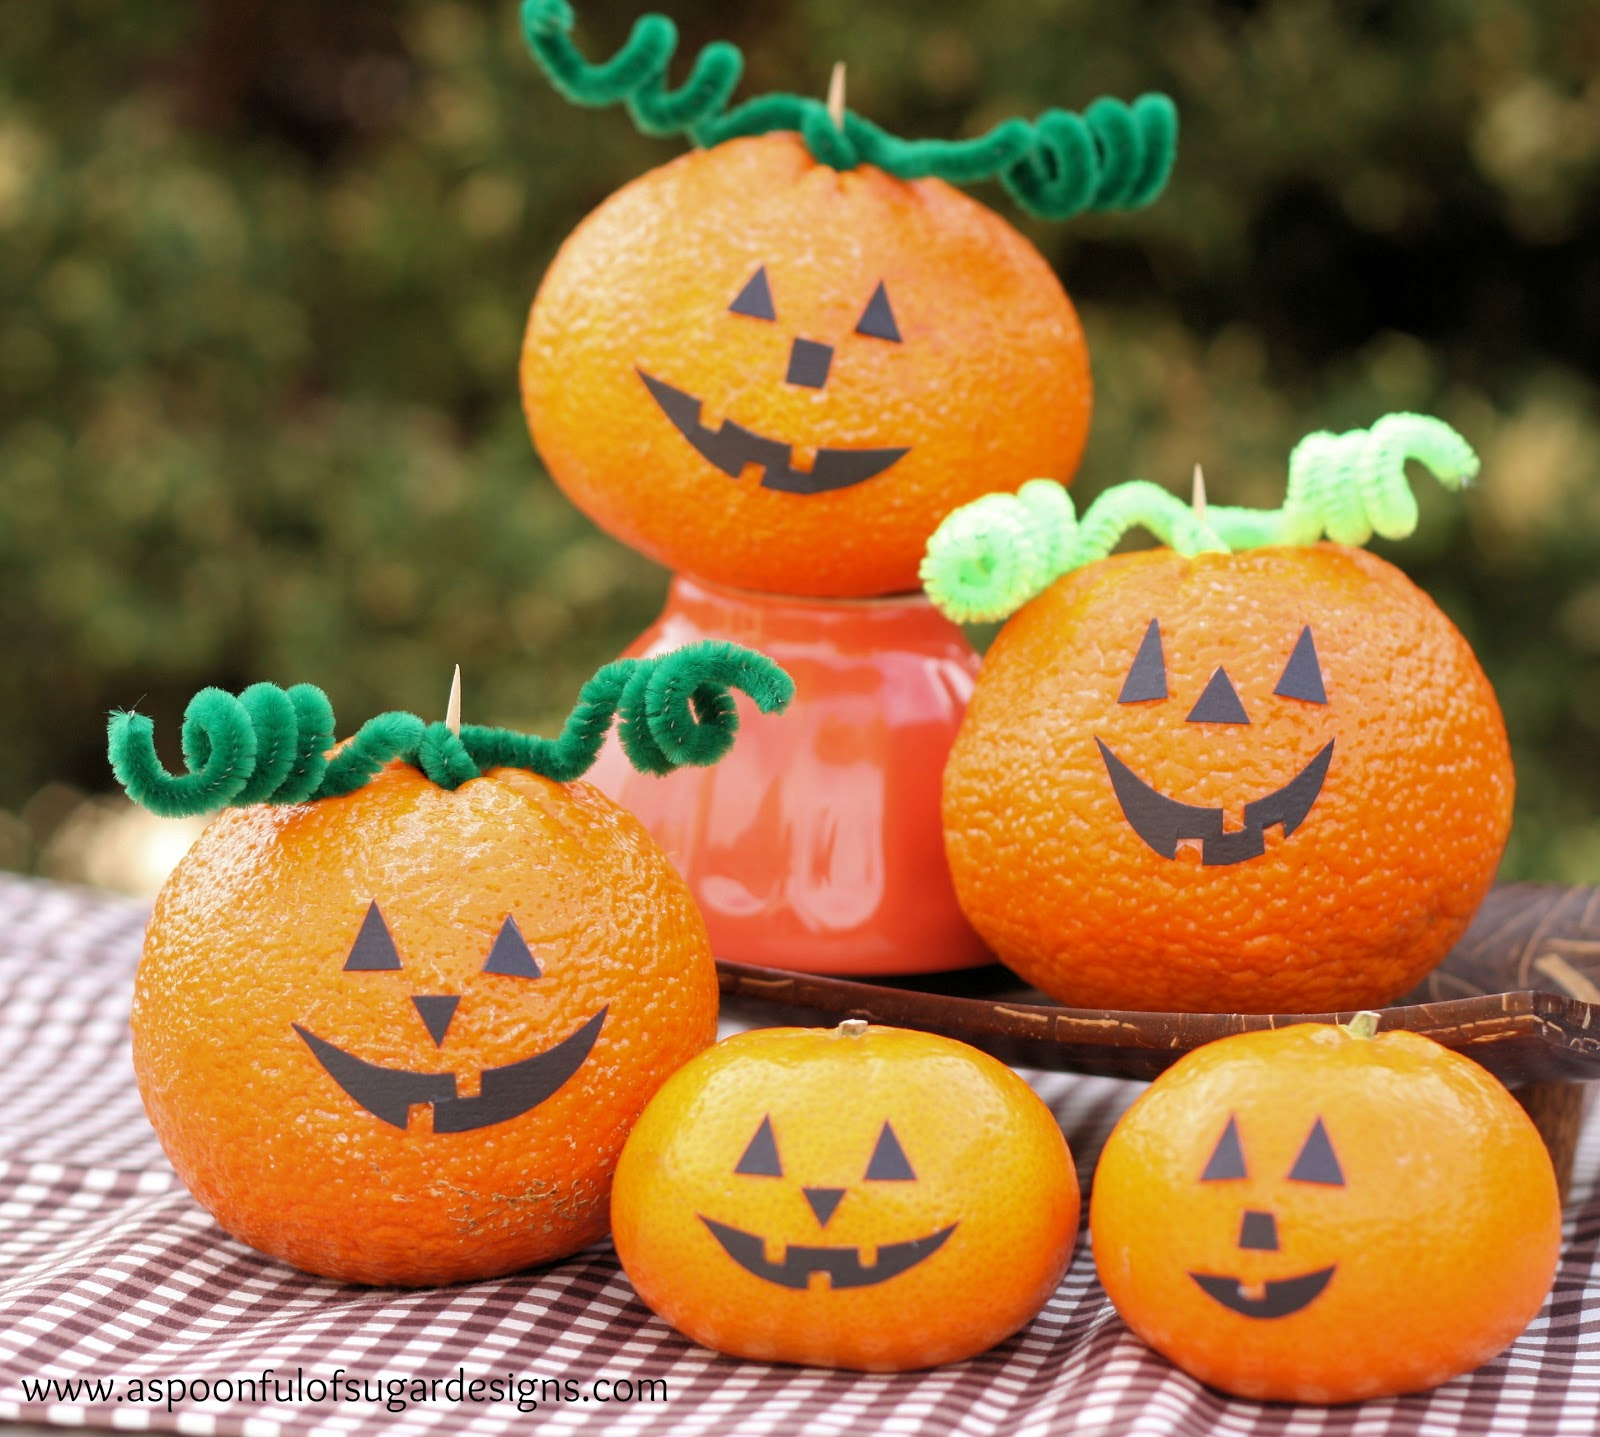 Halloween Crafts And Decorations: A Spoonful Of Sugar